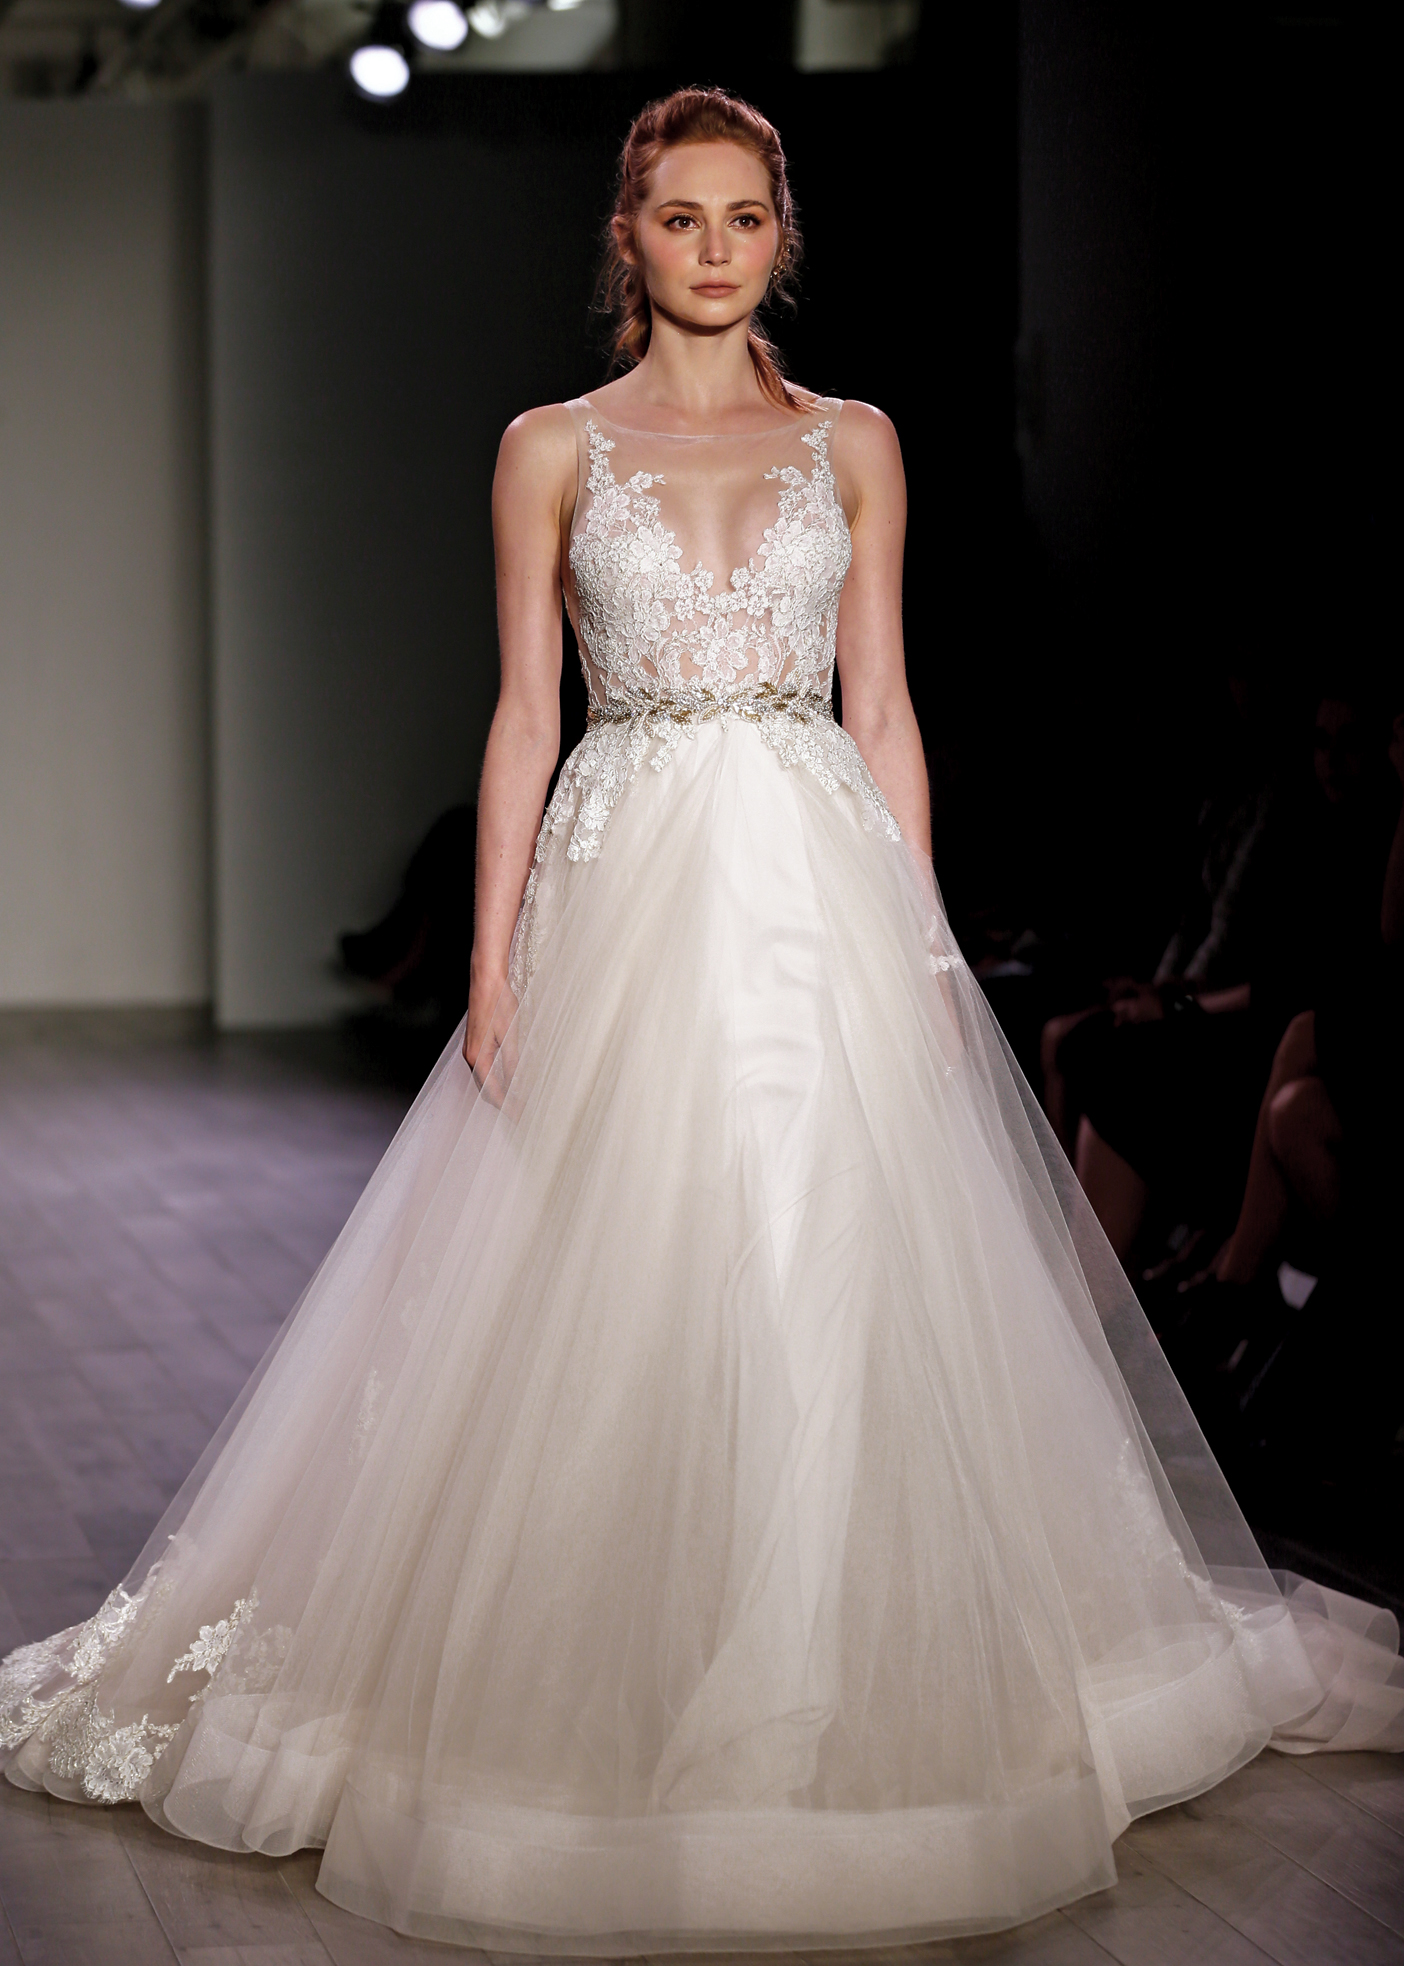 Buy New & Used Wedding Gowns: Inexpensive Wedding Dresses For Sale ...